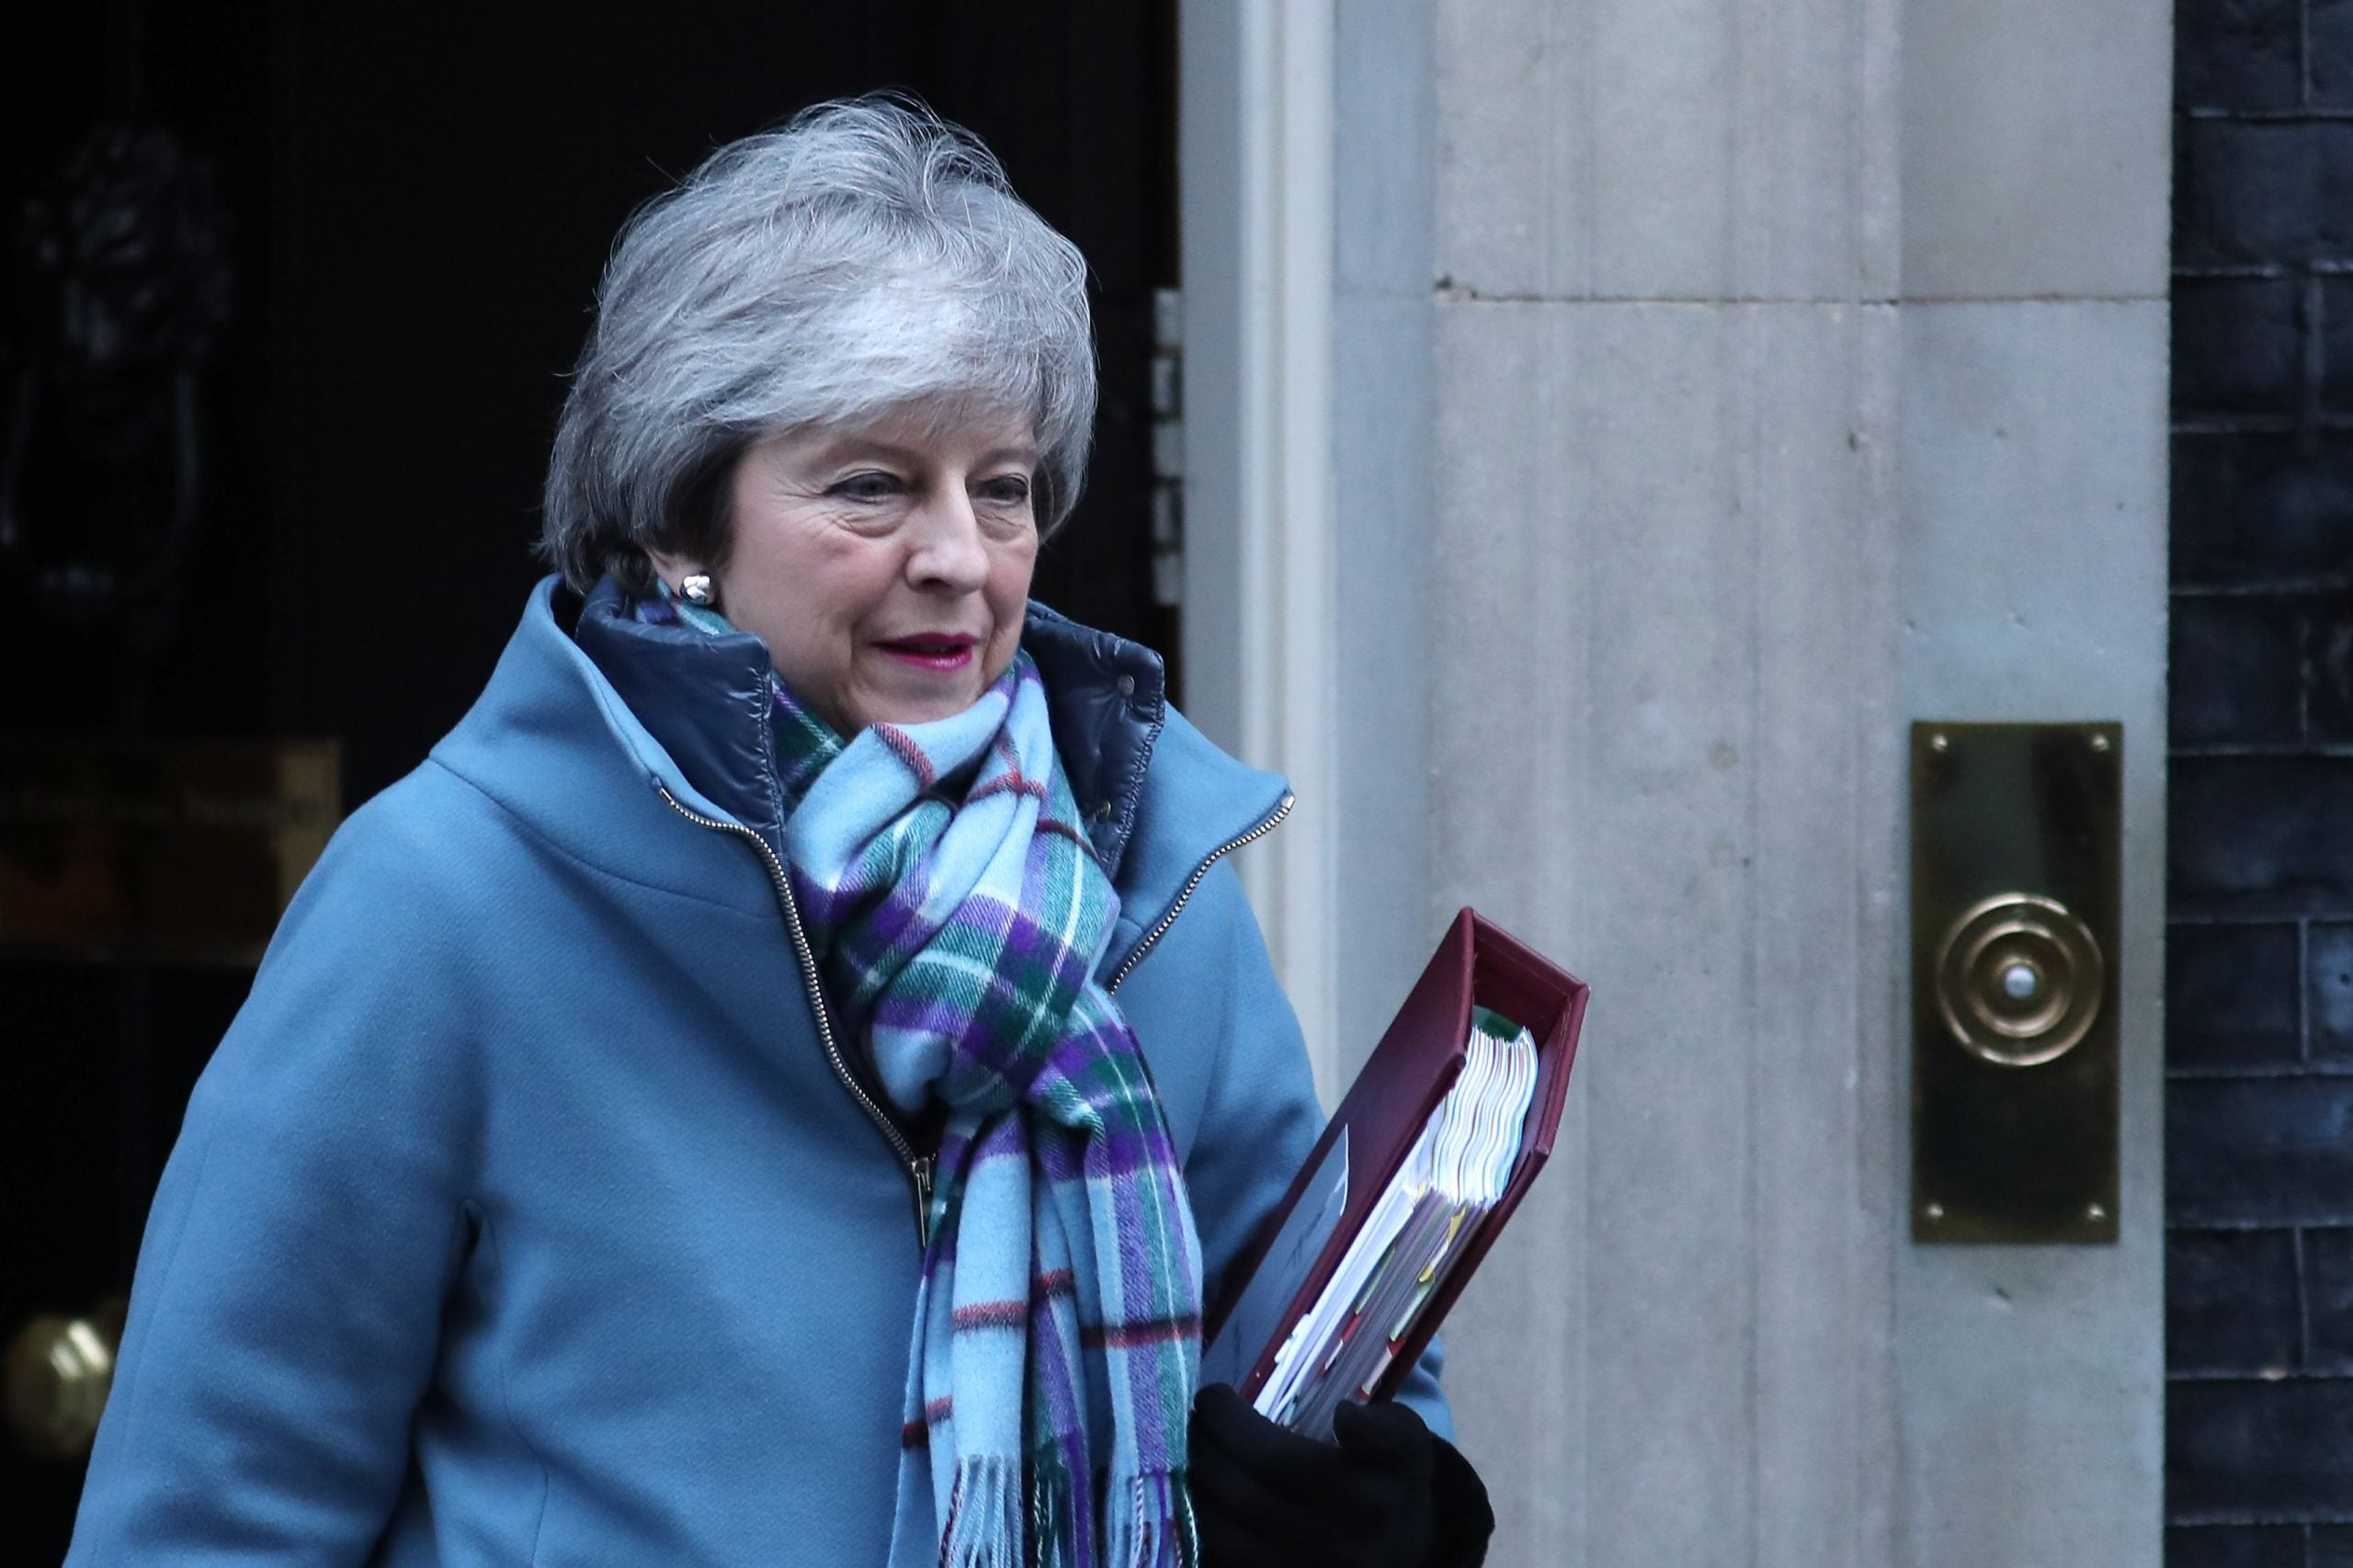 Theresa May's plan to bribe Labour MPs to back Brexit shows austerity was always a choice